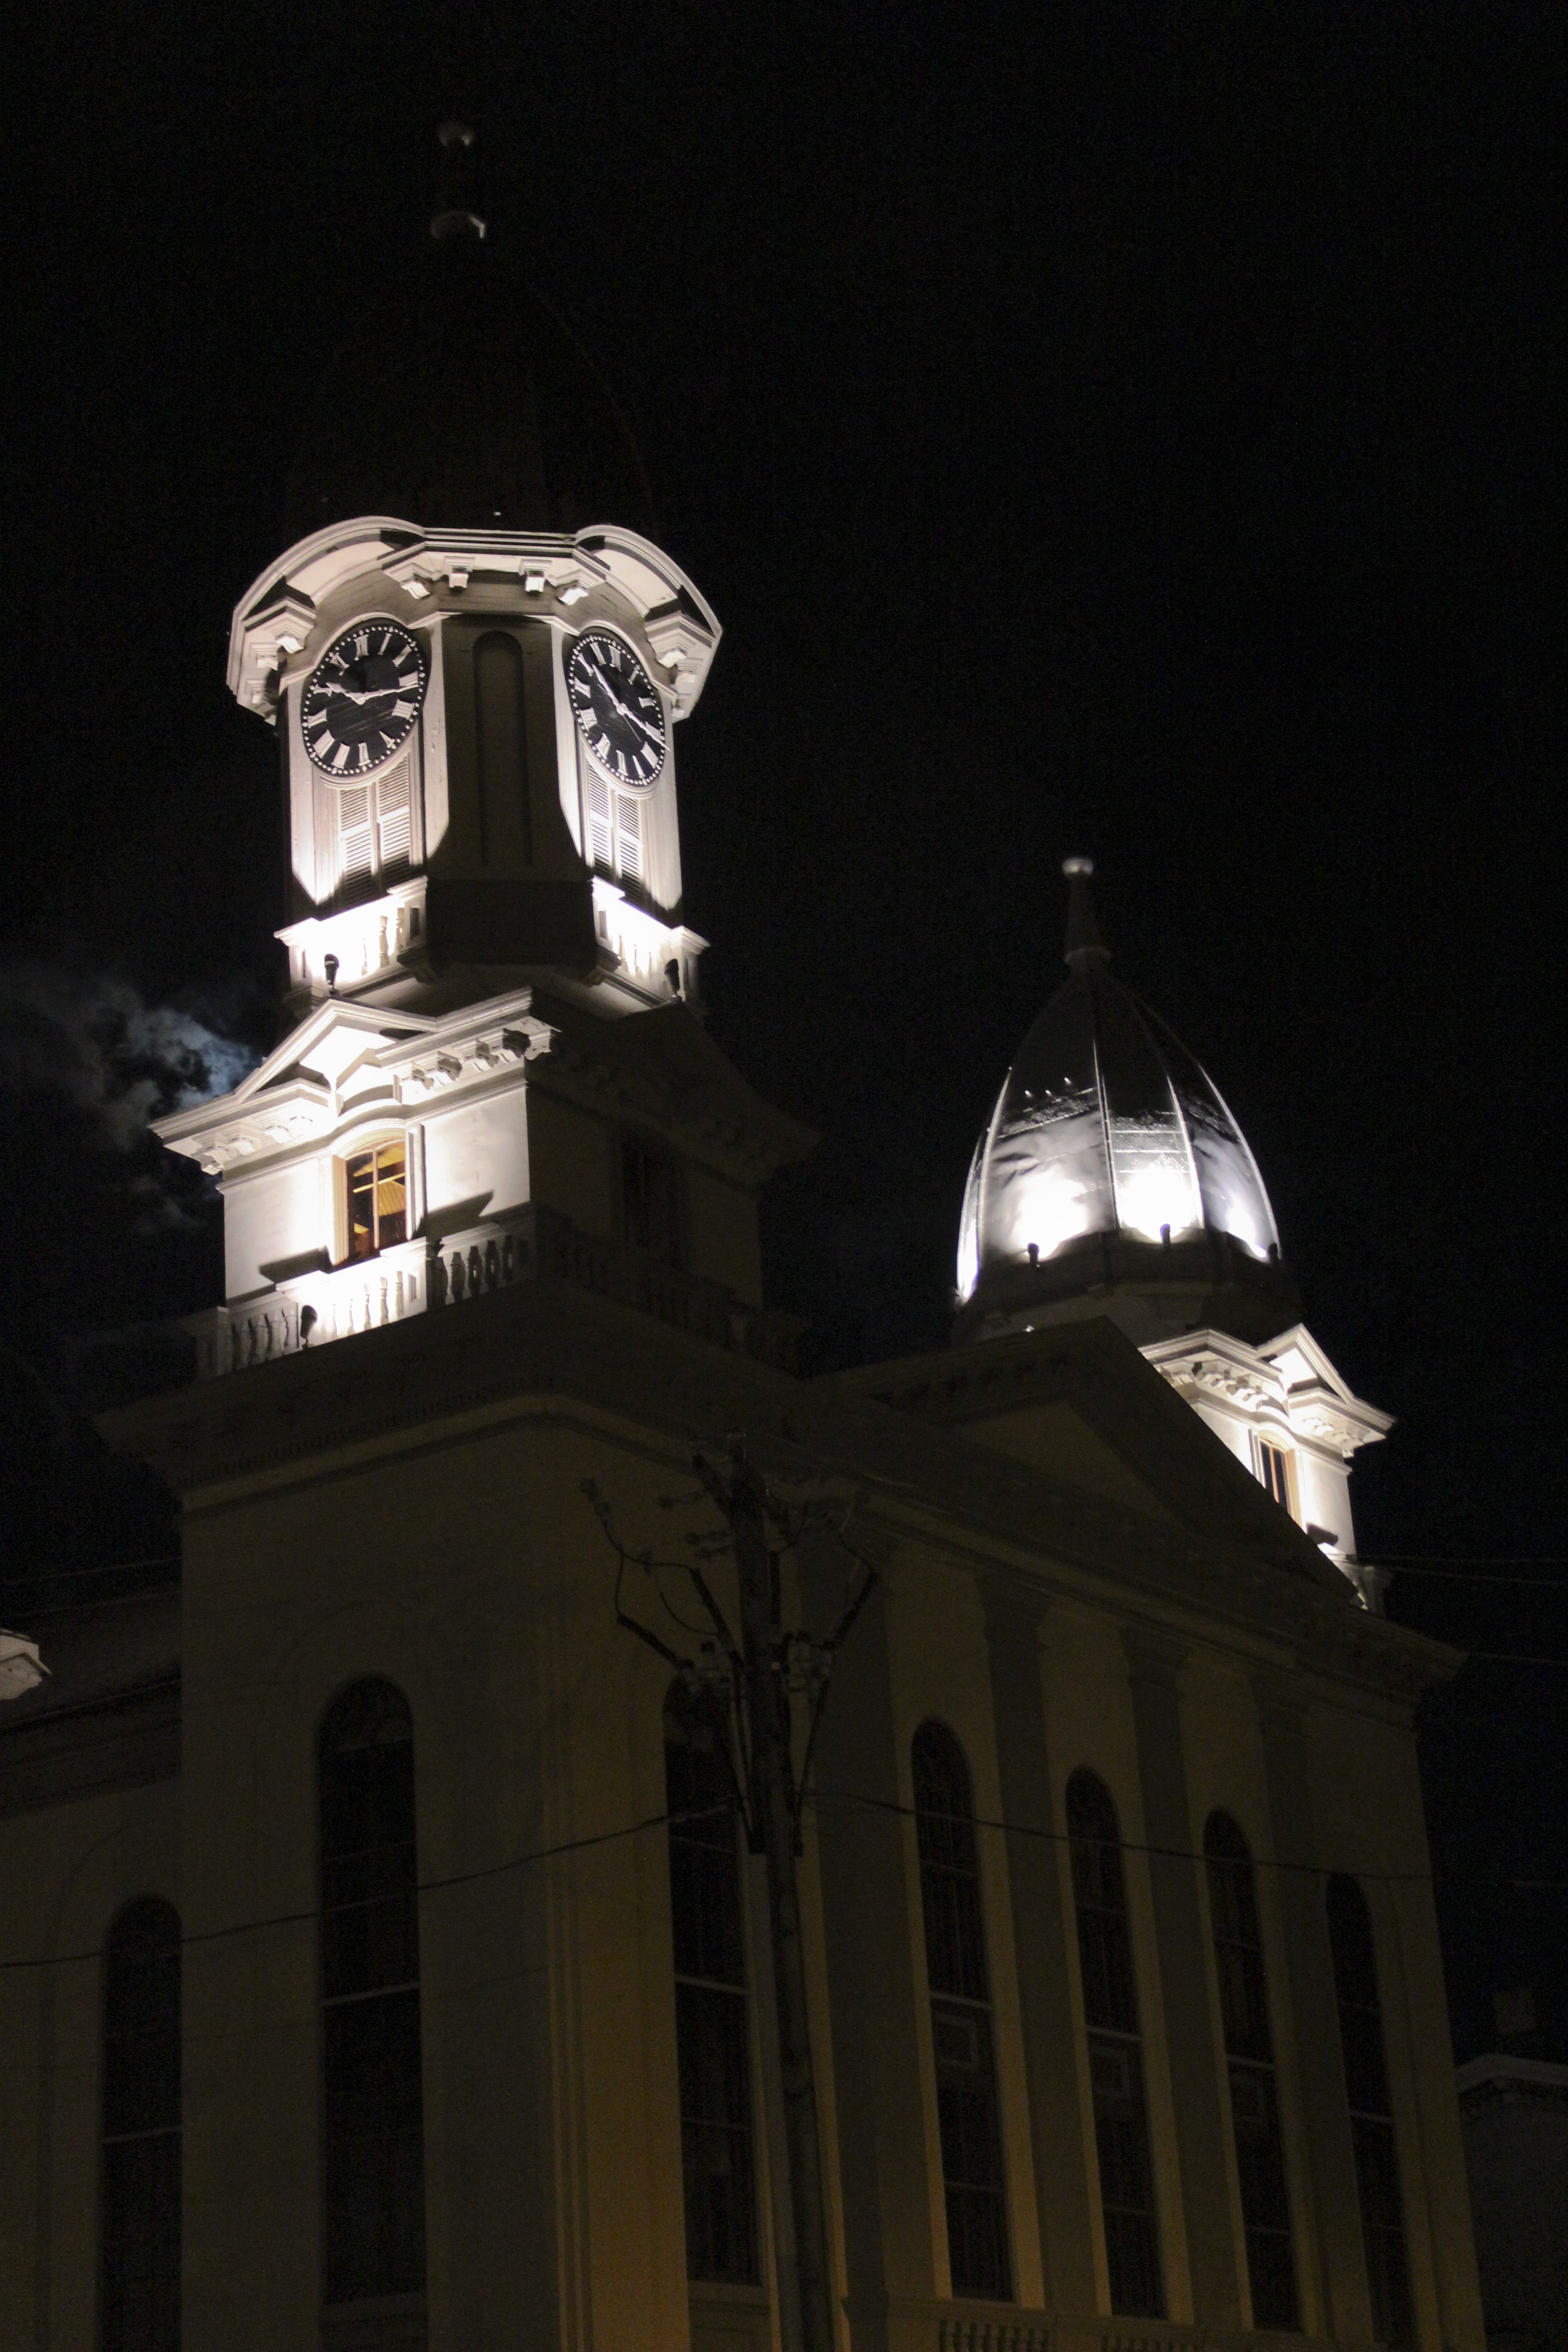 Courthouse at night.